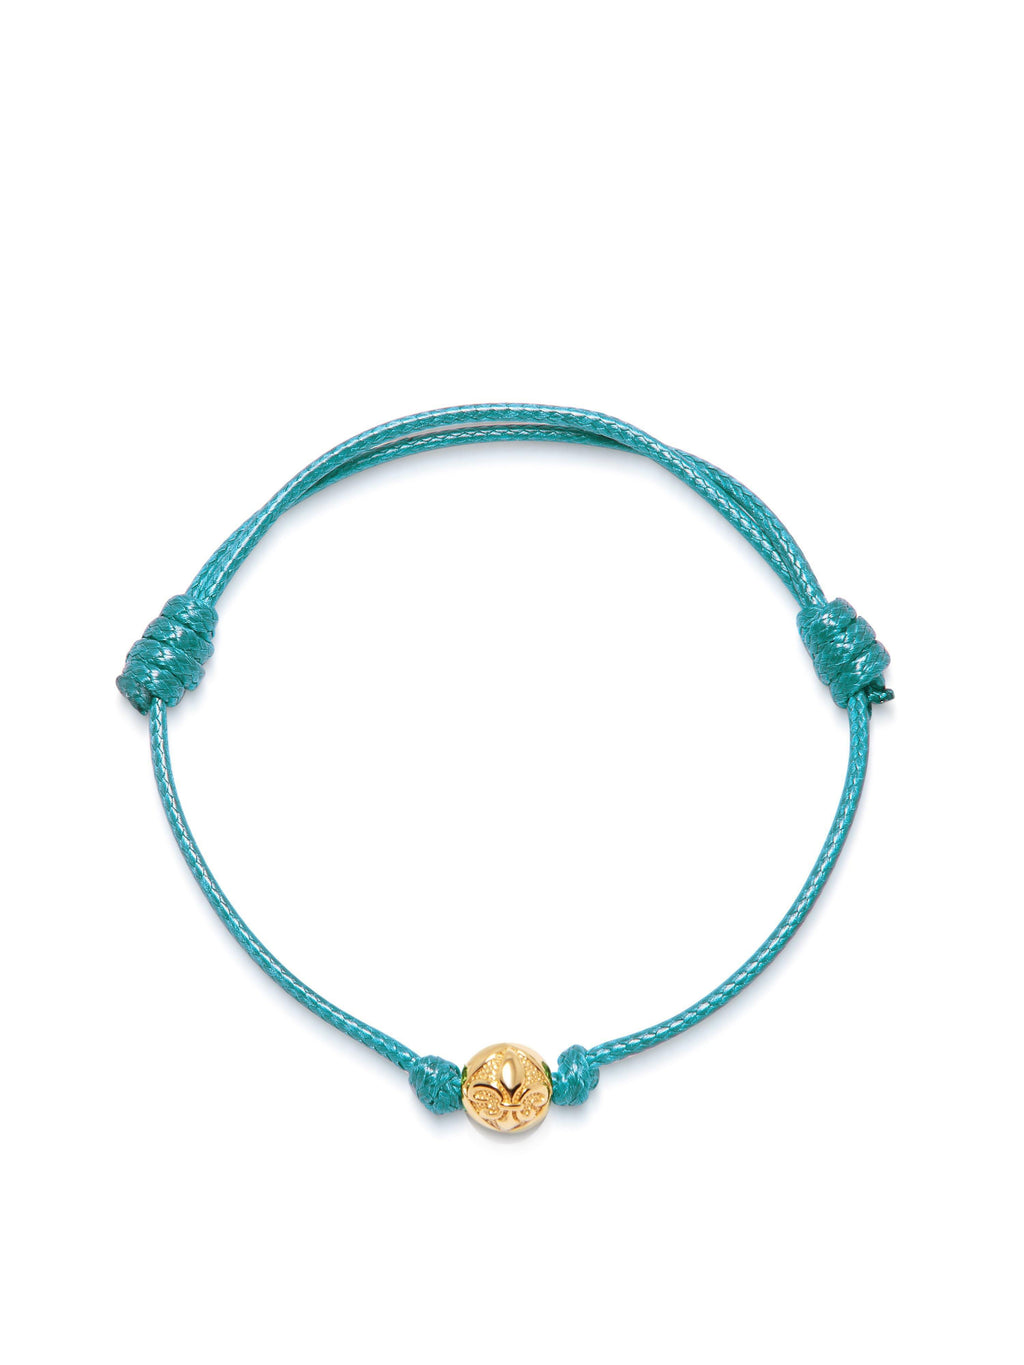 Women's Turquoise String Bracelet with Gold